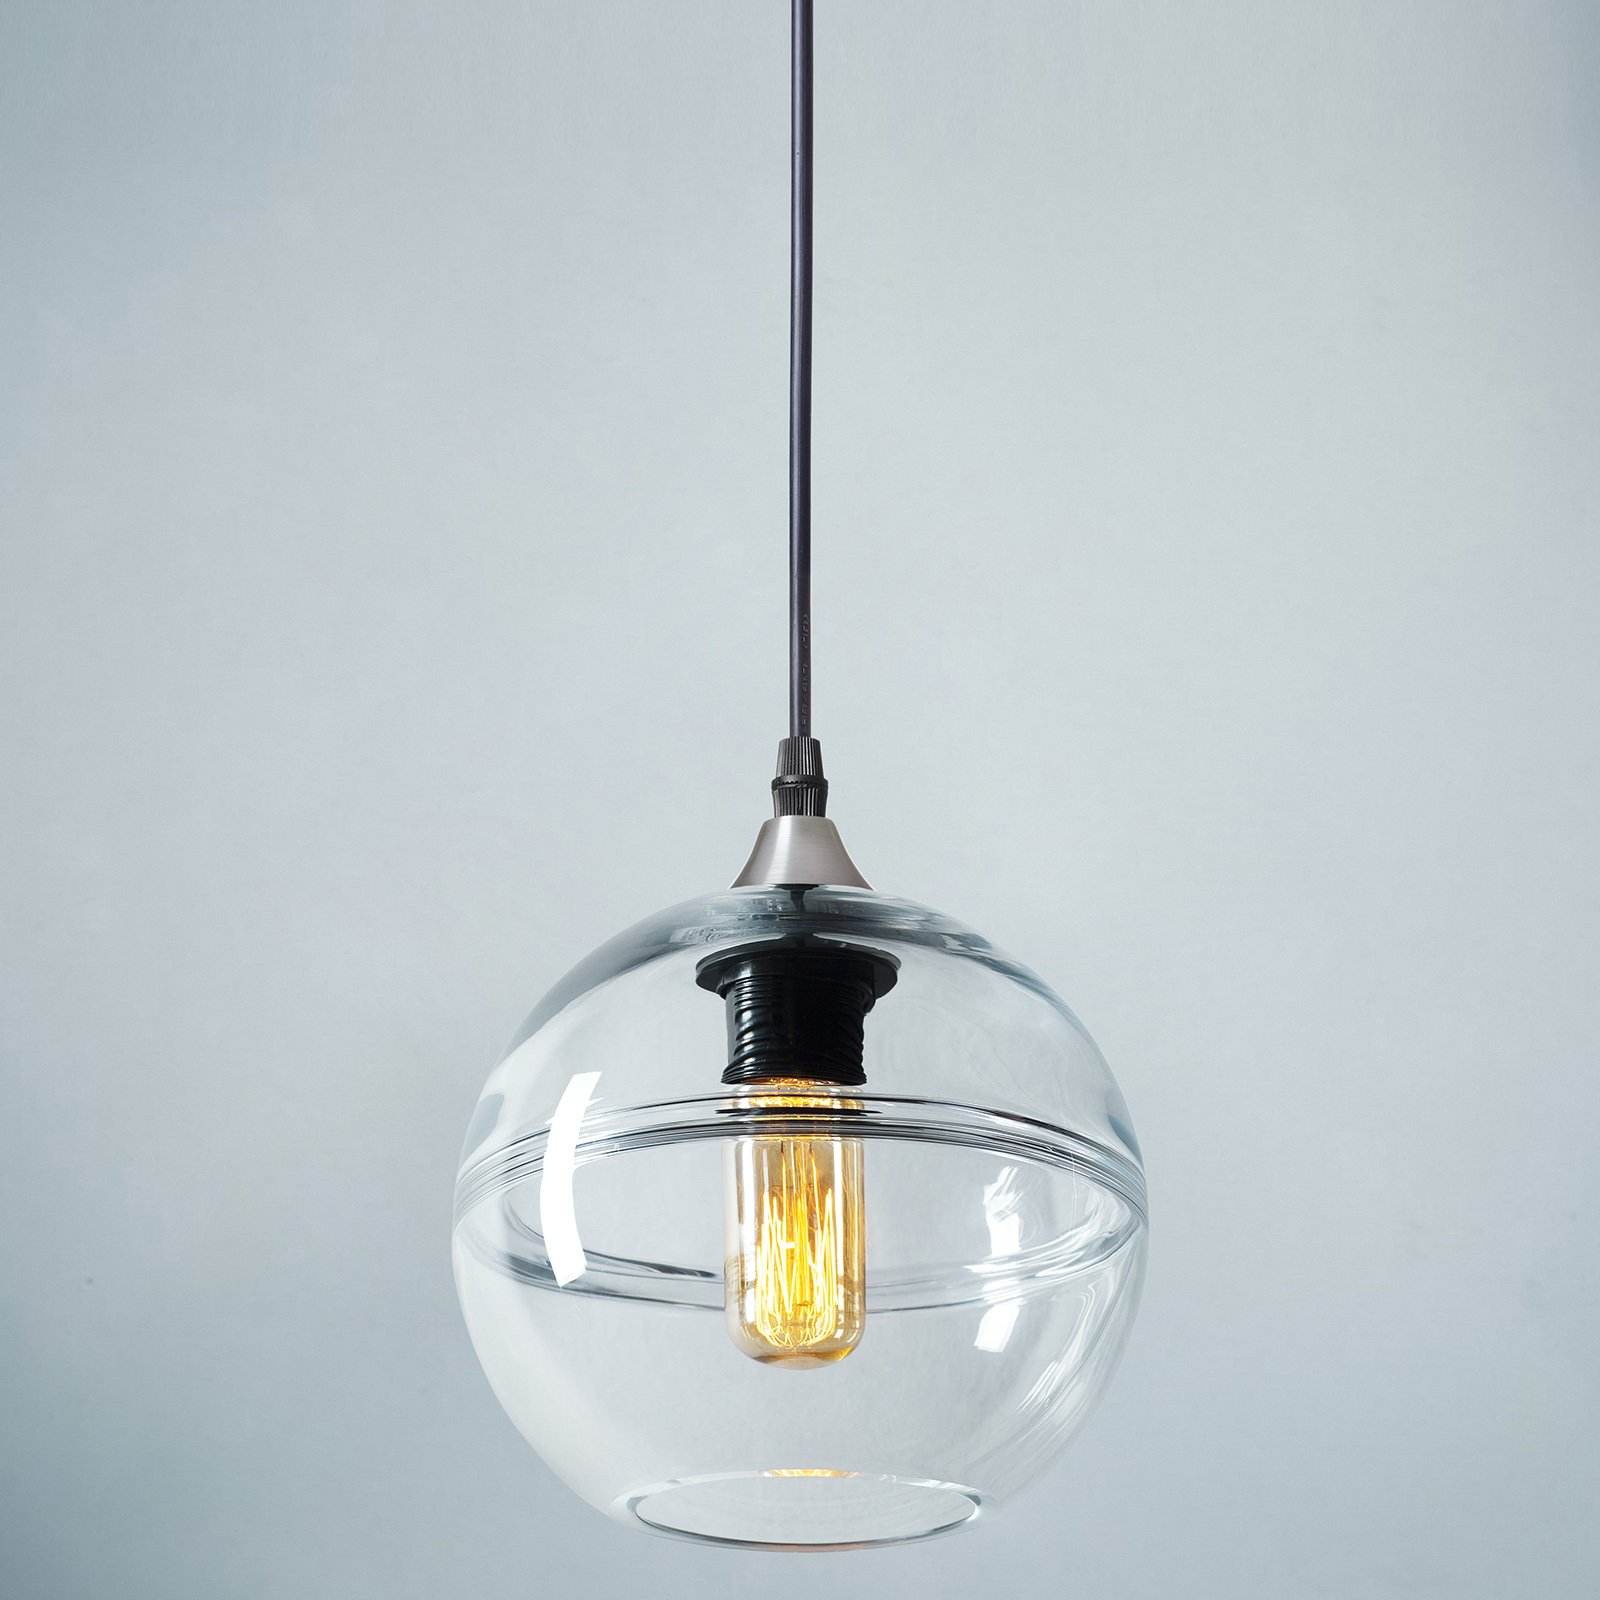 Casamotion Pendant Lighting Handblown Glass Drop Hanging